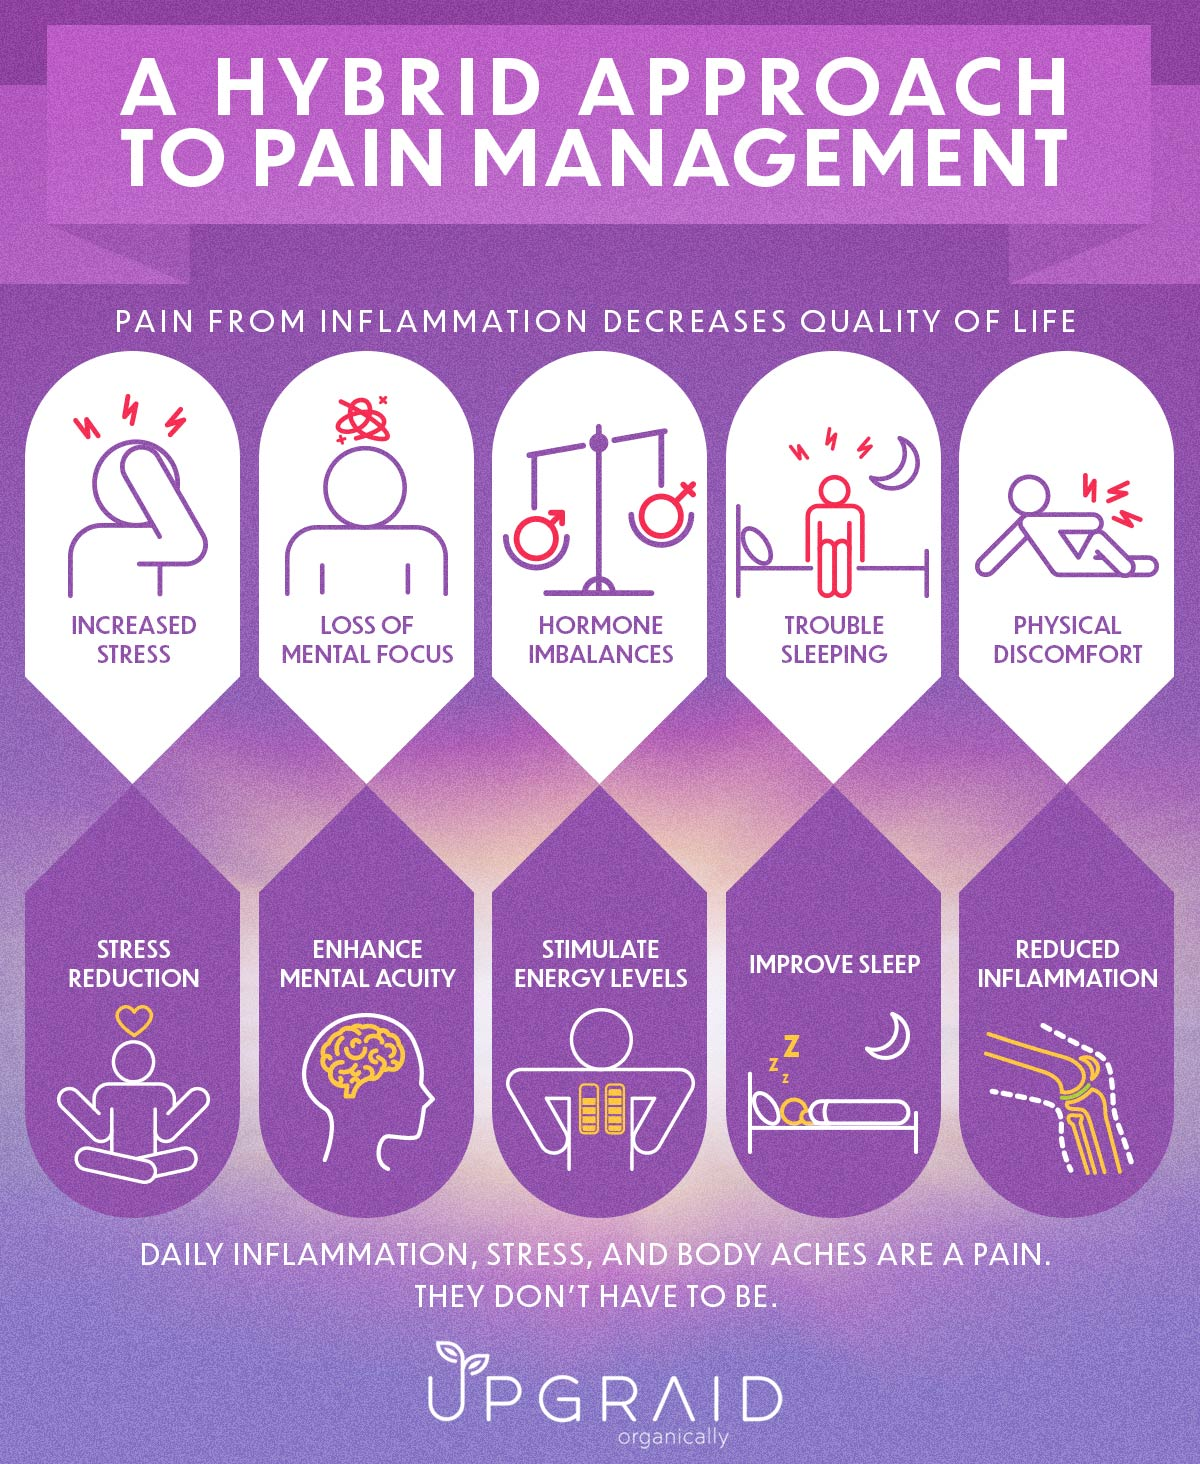 a hybrid approach to pain management includes supplementing your body with natural ingredients ashwagandha, turmeric, tart cherry and ginger root